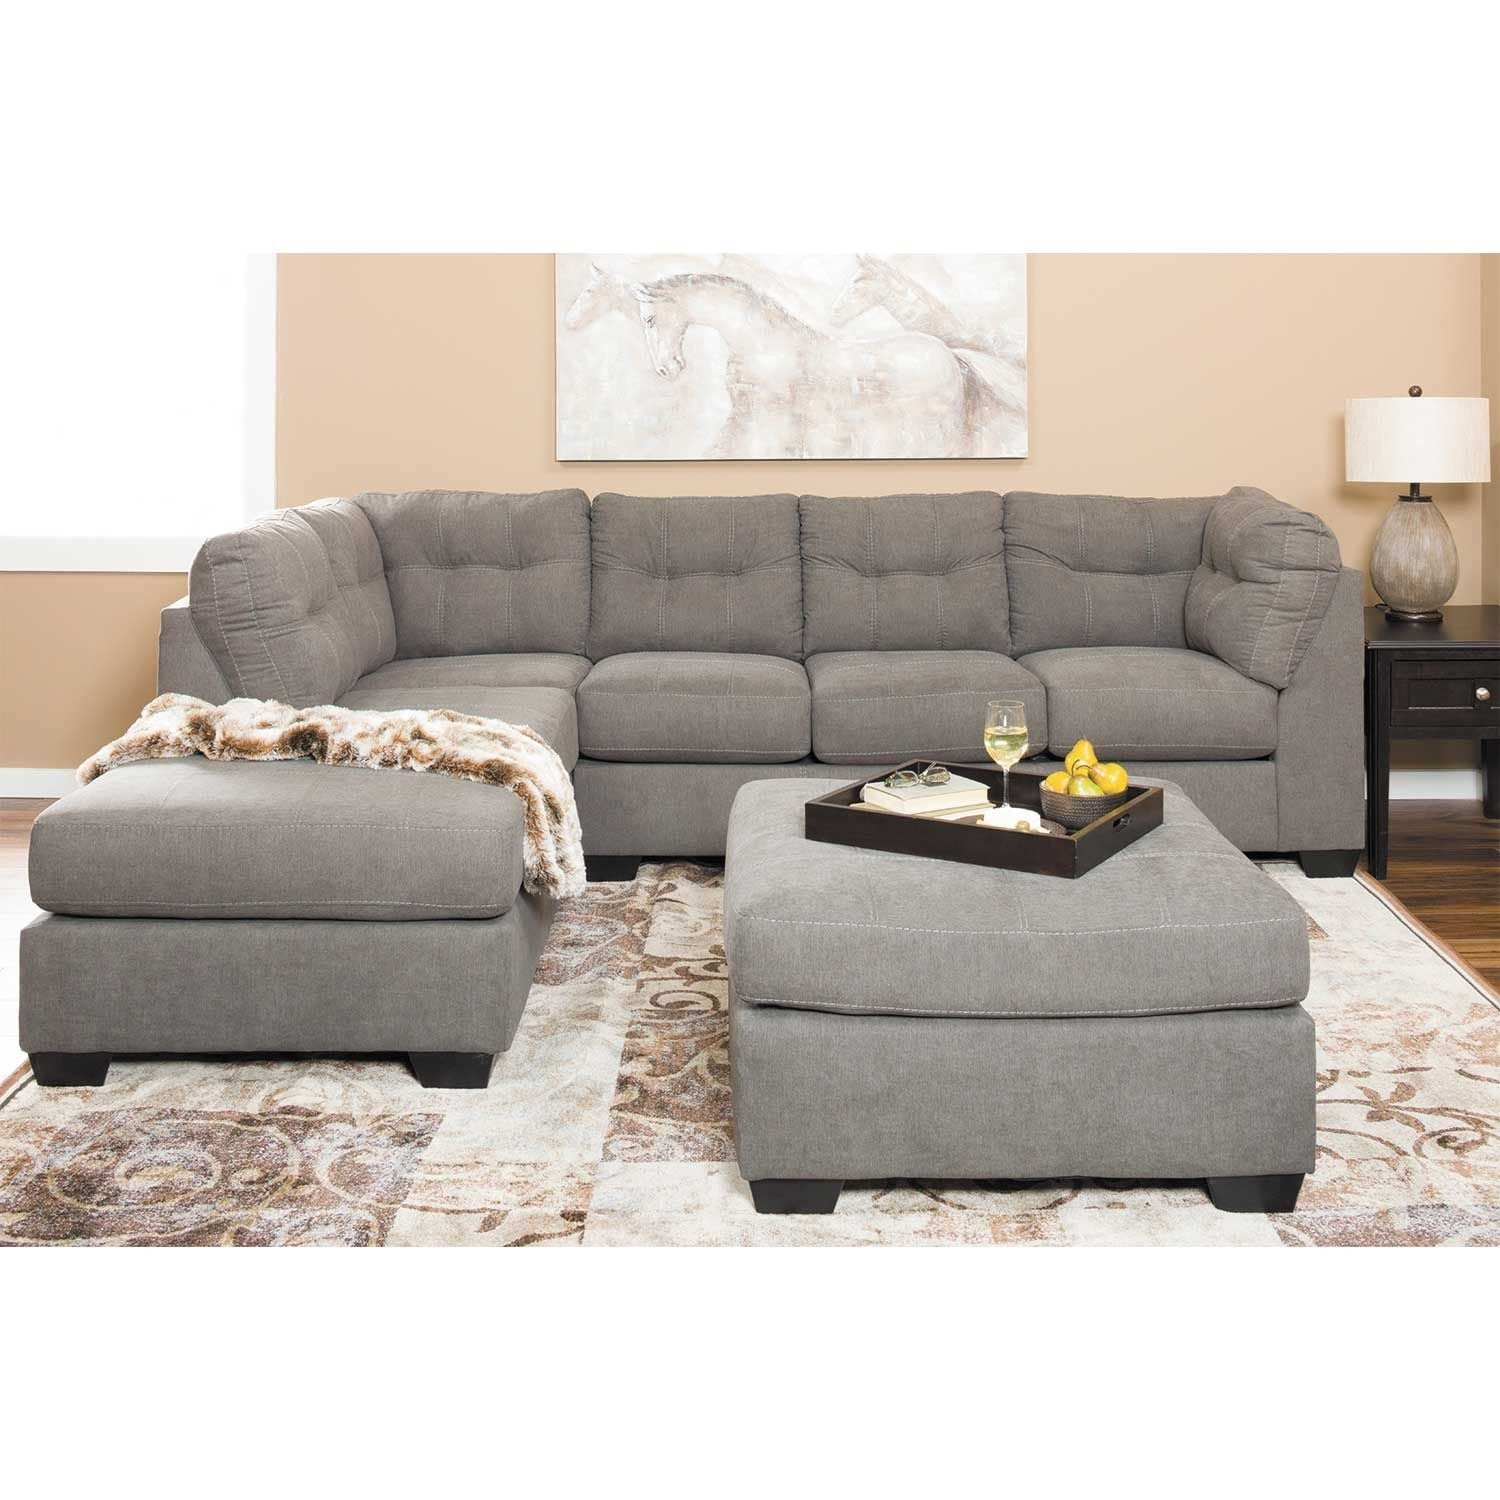 Maier Charcoal 2 Piece Sectional With Laf Chaise | 4520016/67 with Arrowmask 2 Piece Sectionals With Sleeper & Left Facing Chaise (Image 18 of 30)